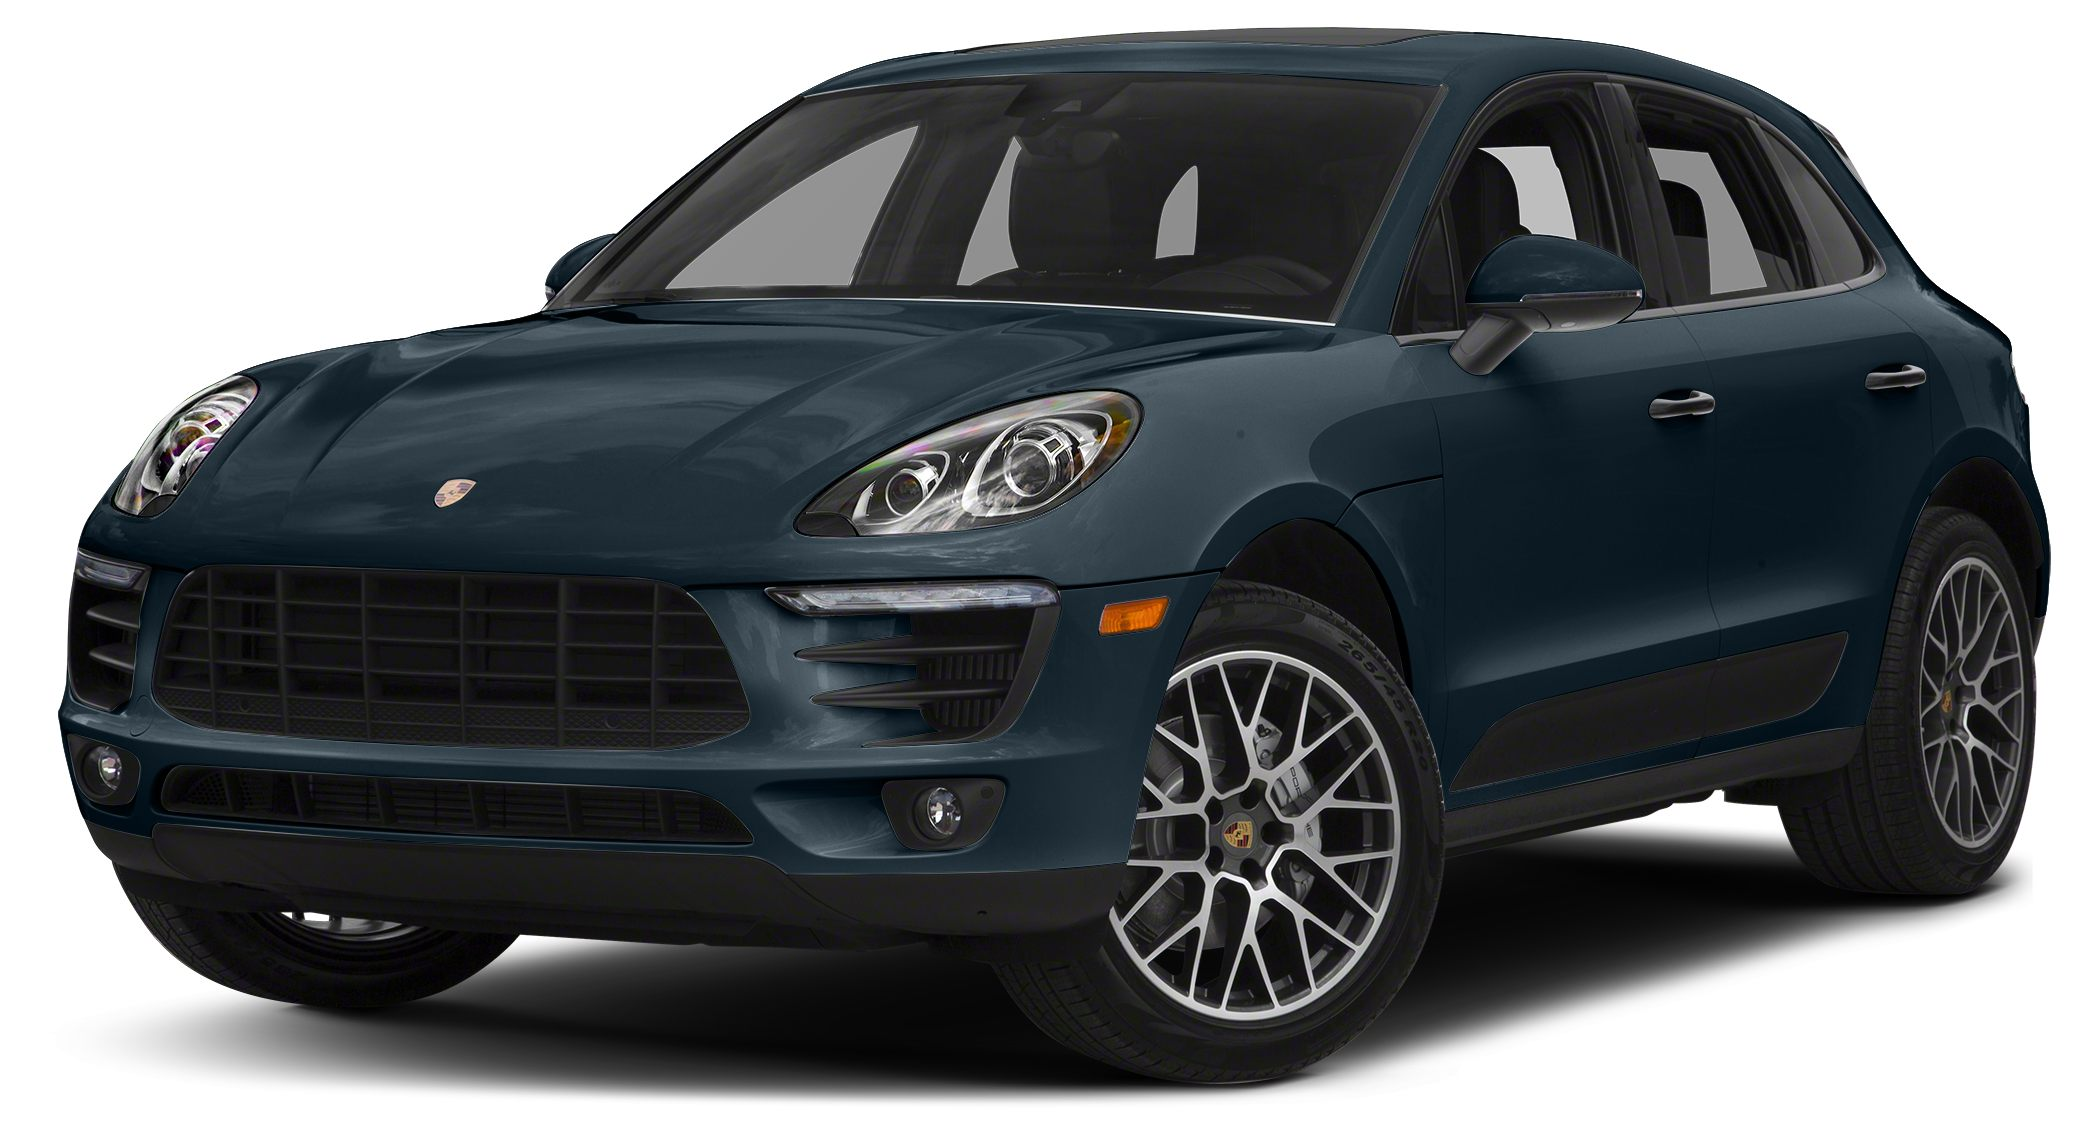 2018 Porsche Macan S All Wheel DriveAWD New Inventory SAVE AT THE PUMP 23 MPG Hwy Opti